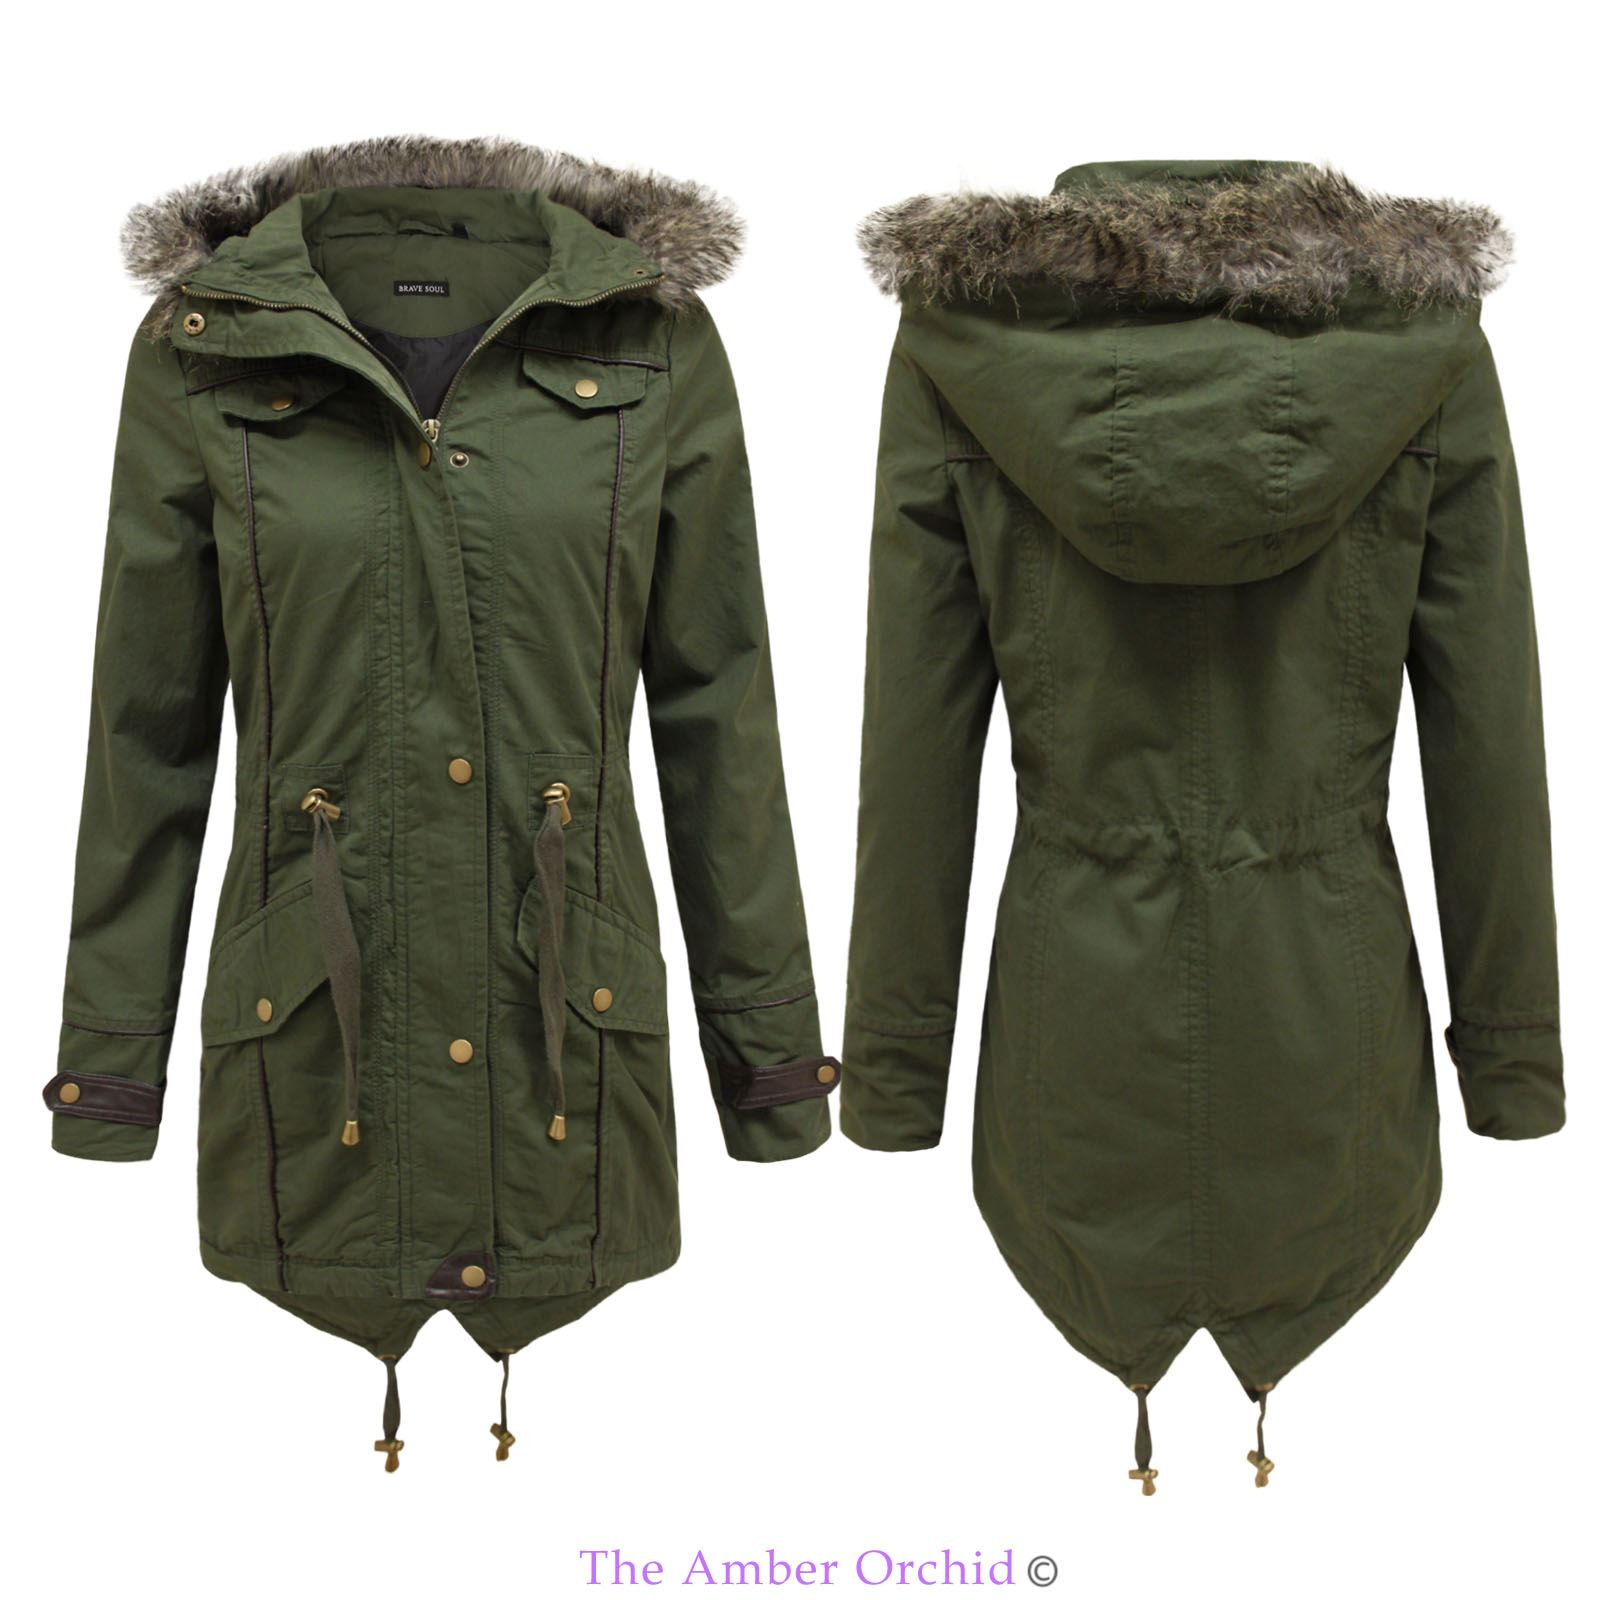 Fishtail Coats & Jackets for Women > products